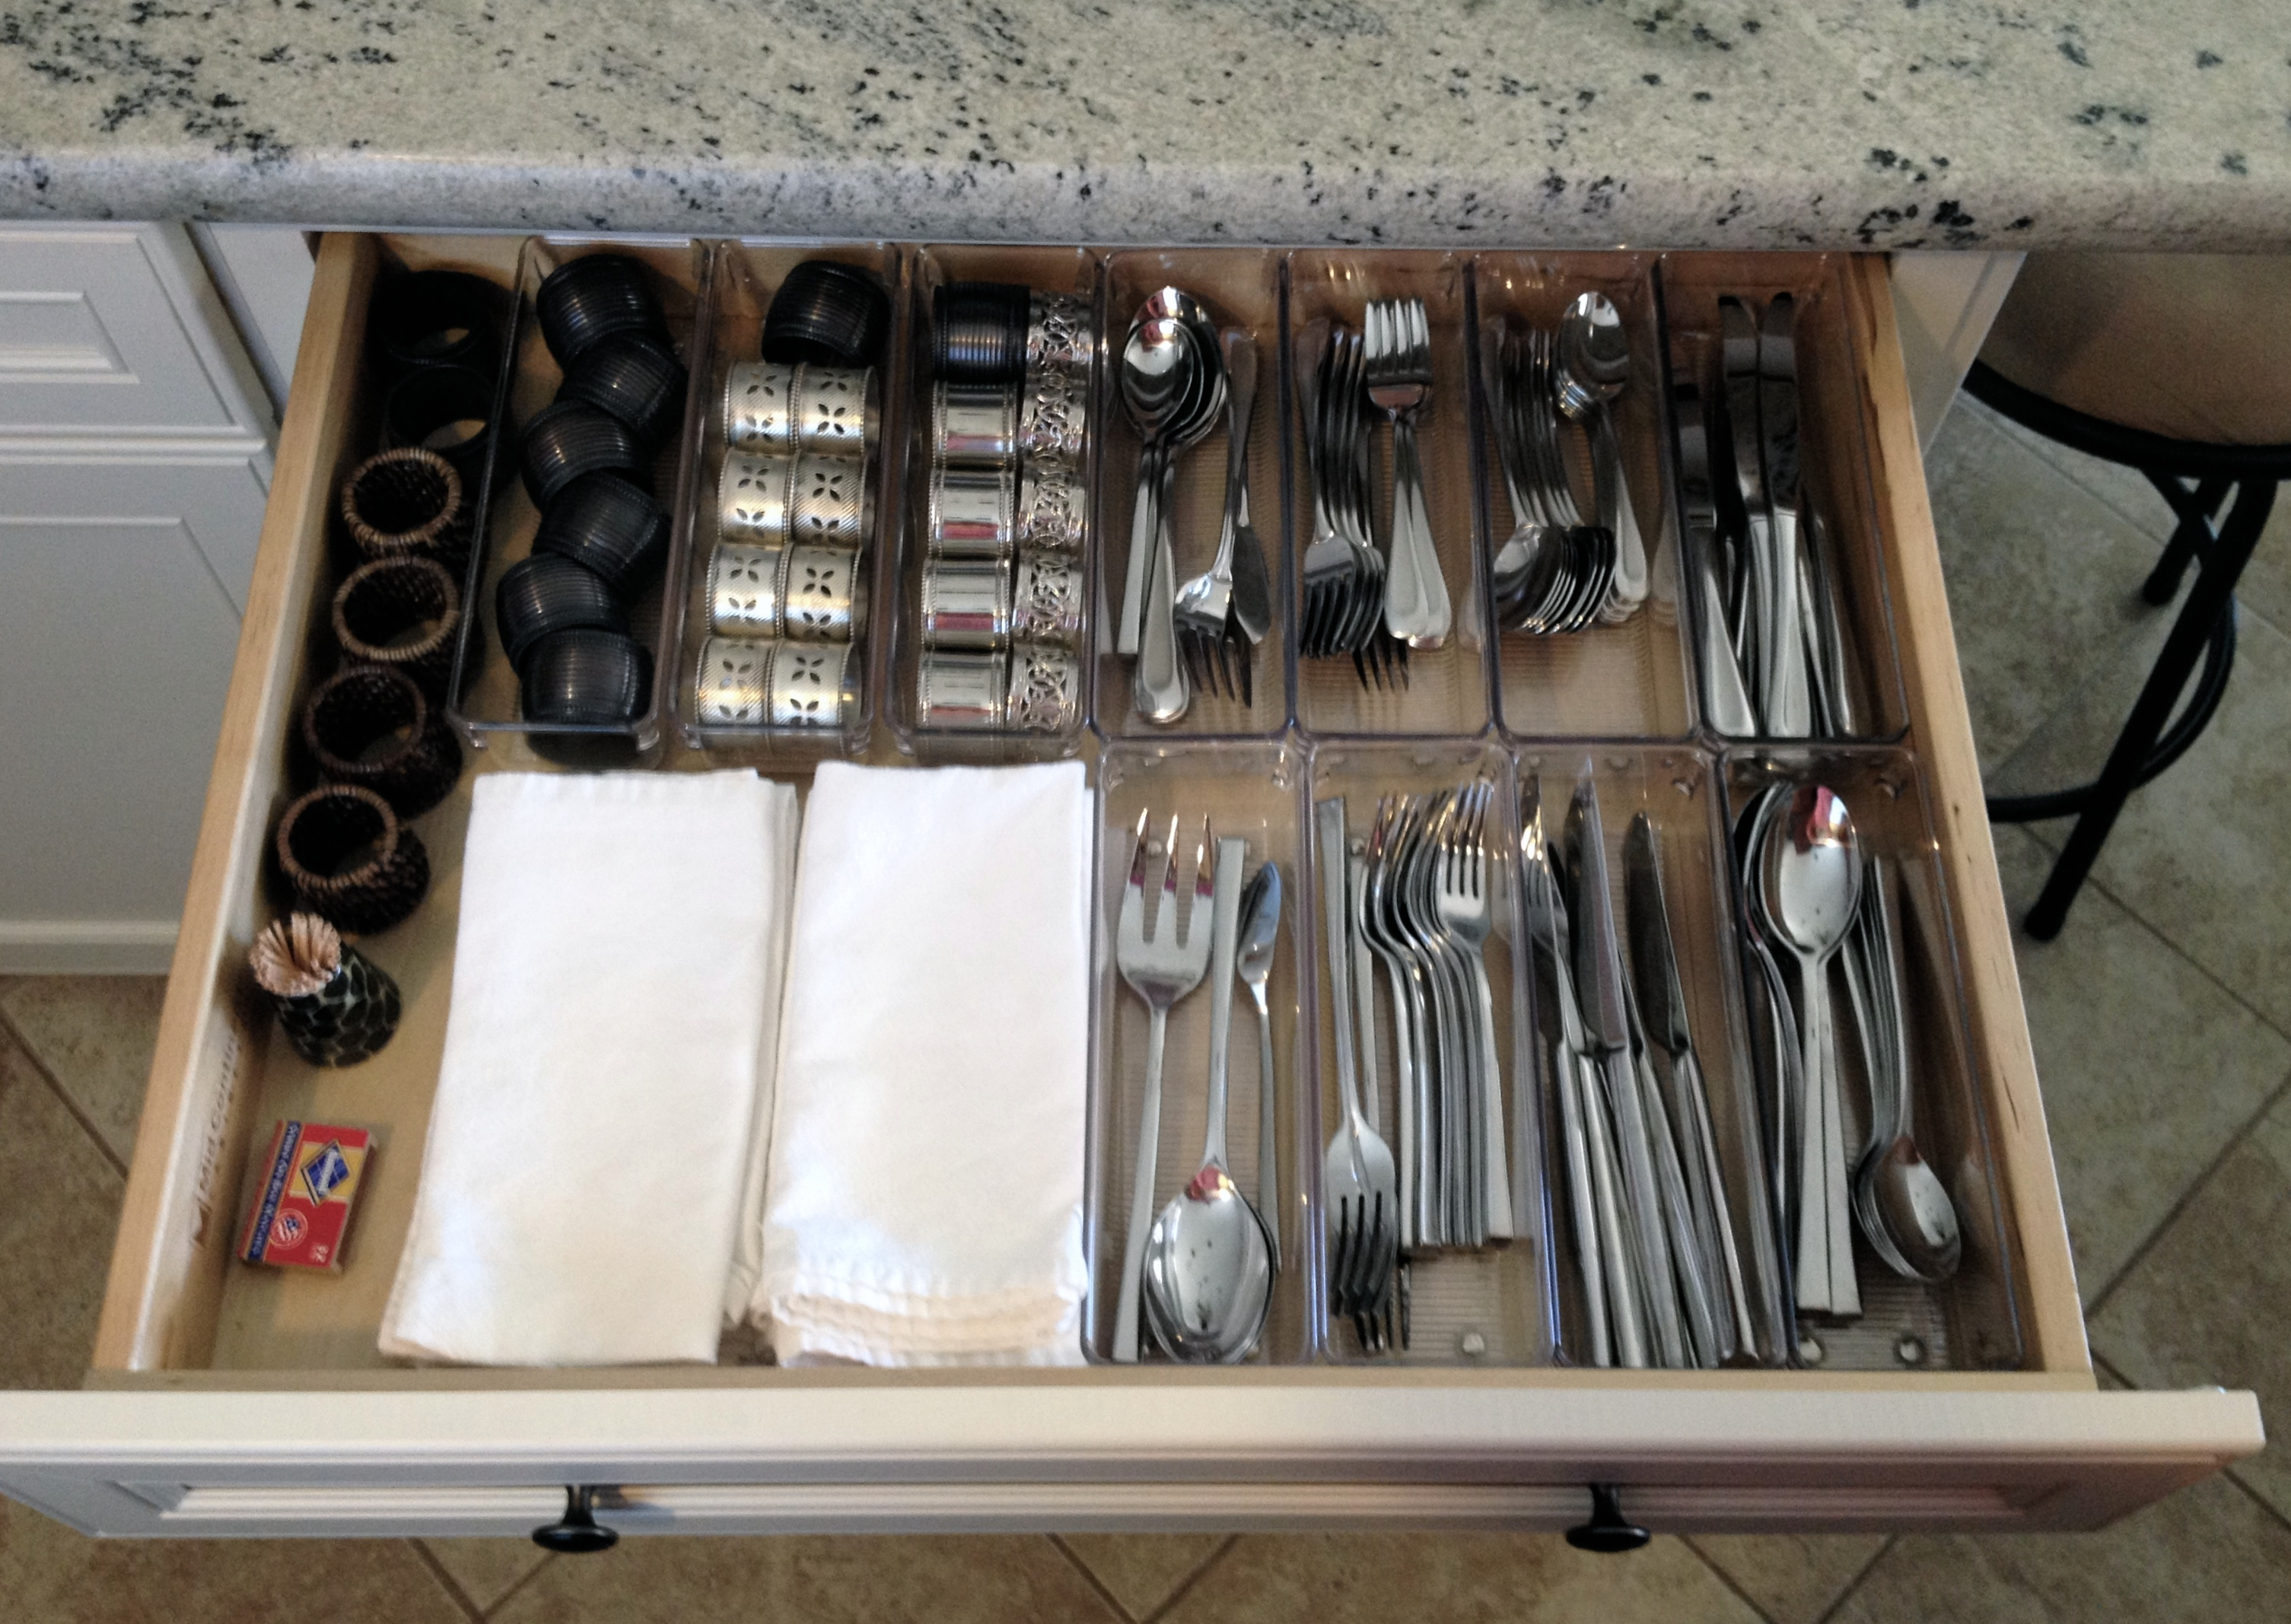 The organized kitchen: Silverware drawer with acrylic dividers from Bed Bath and Beyond | Inspiredhaven.com